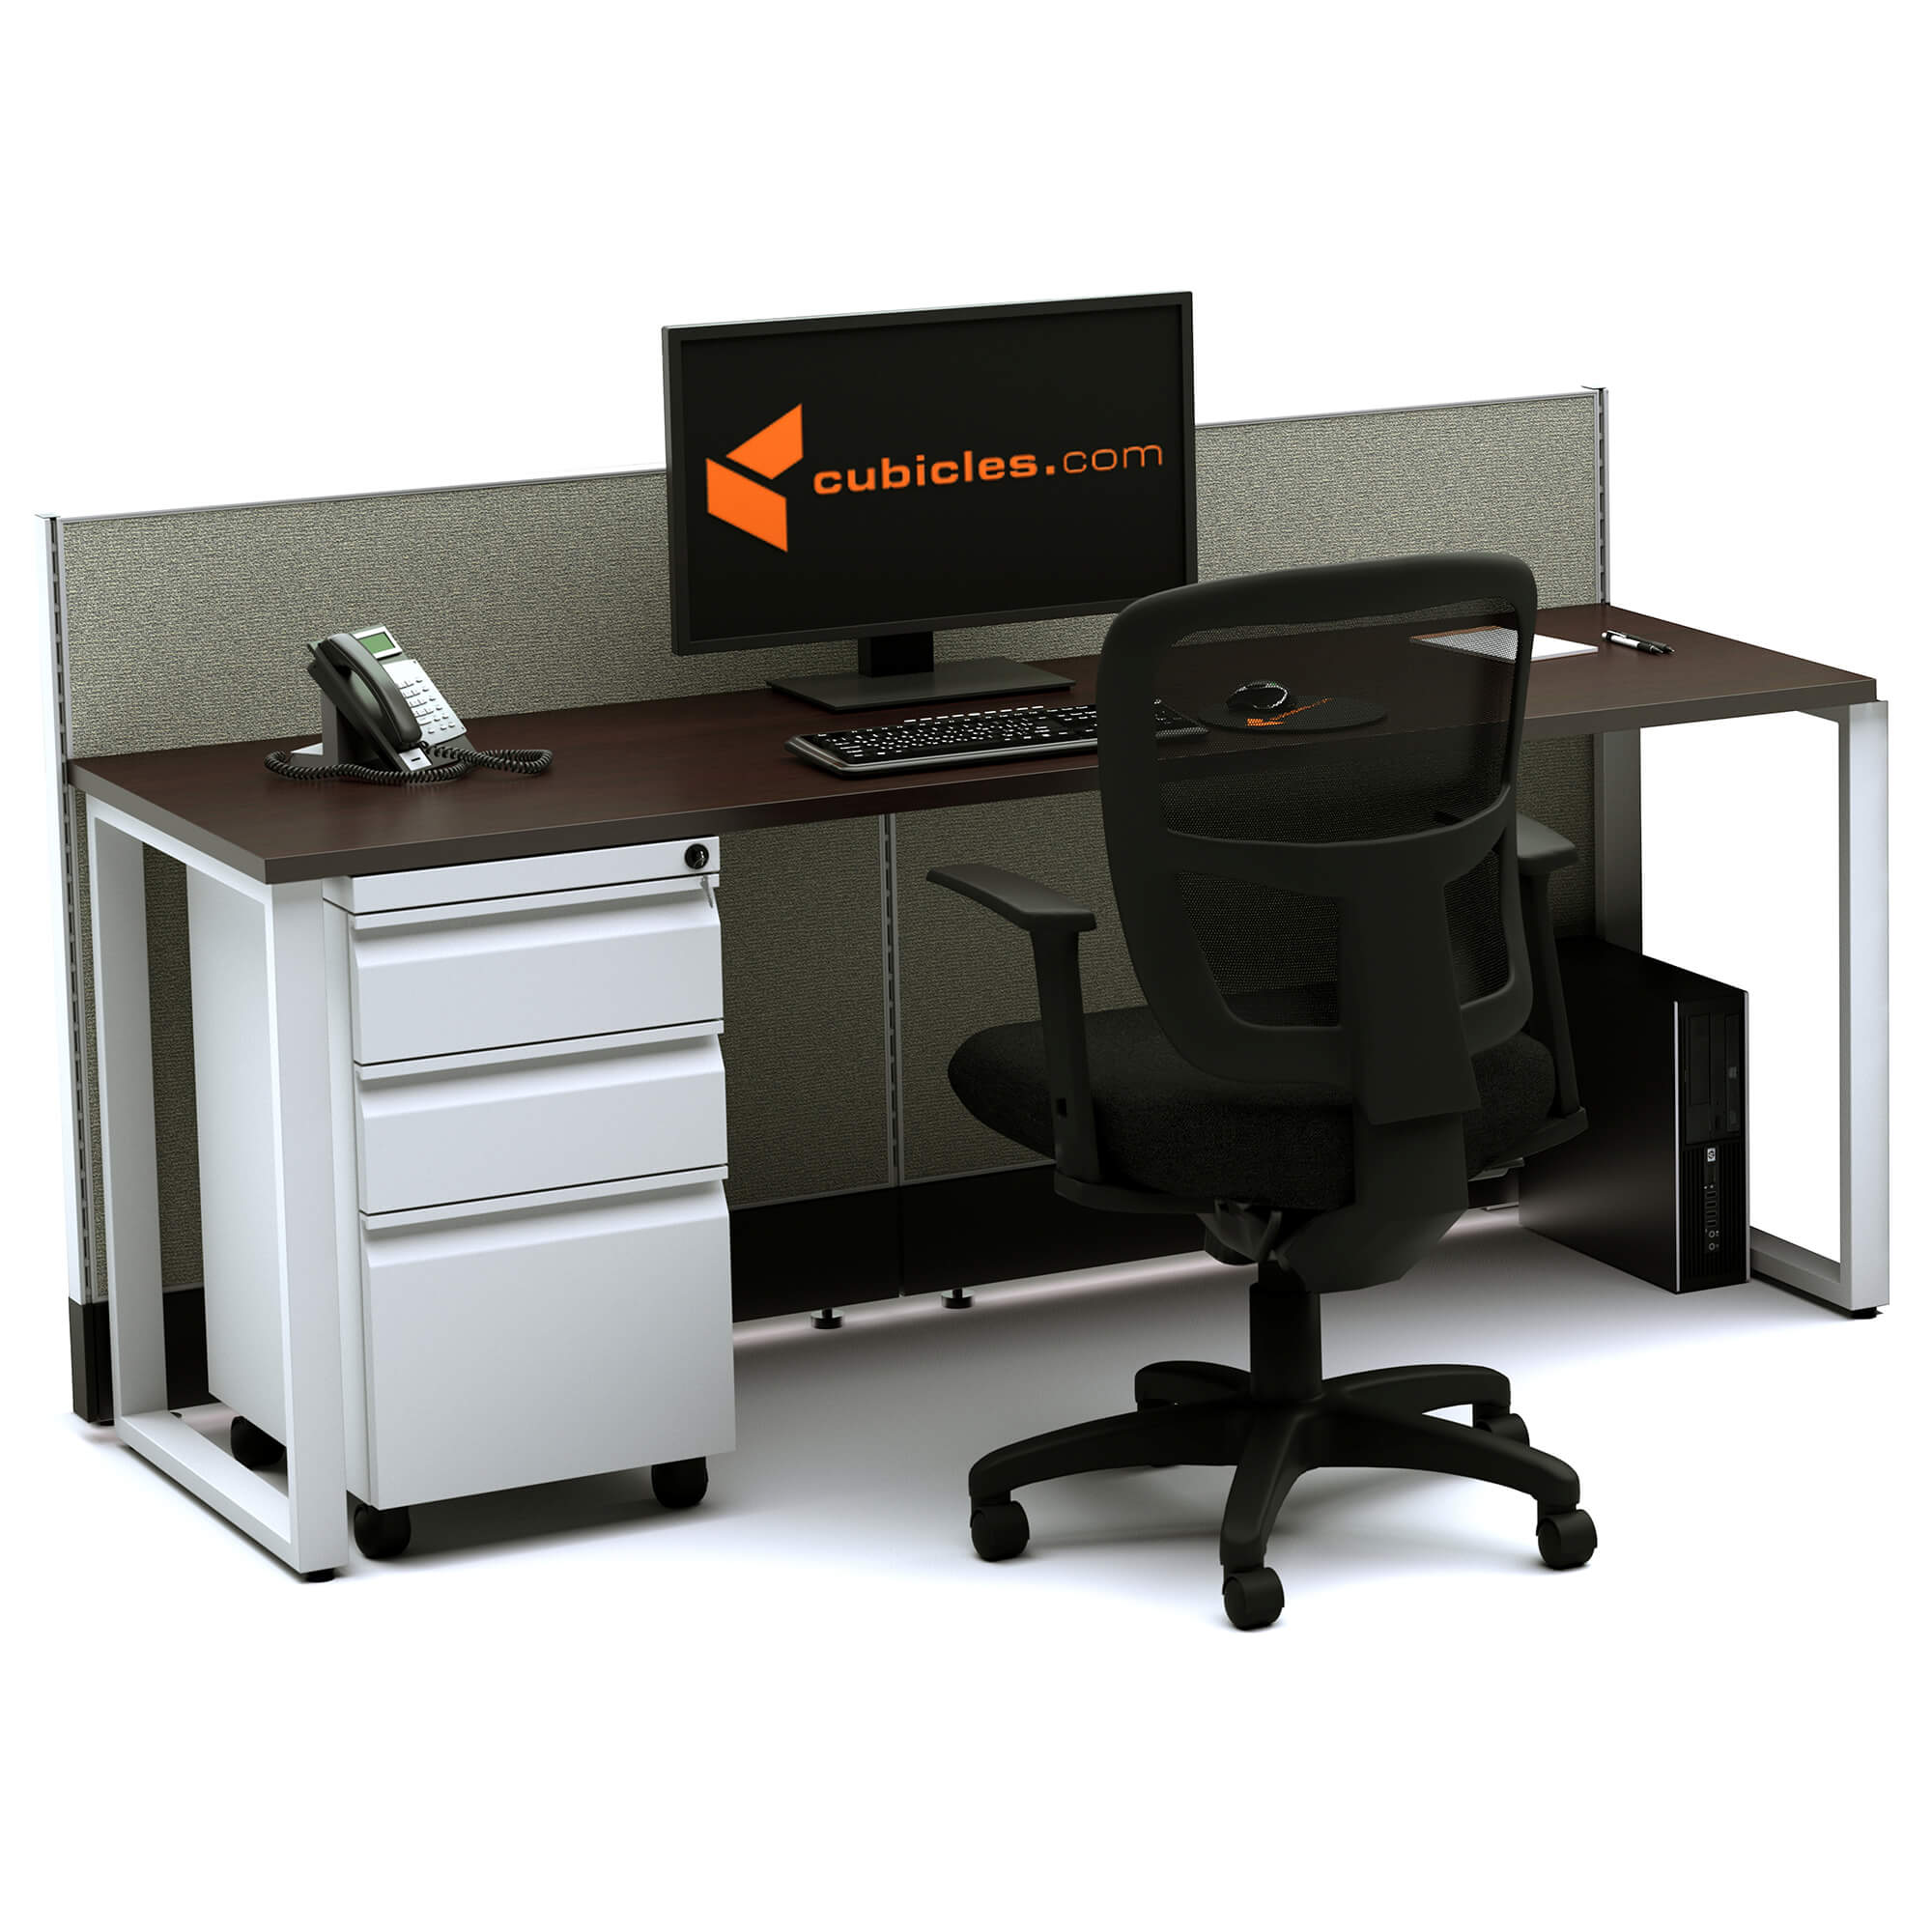 office-benching-office-benching-desks-1-2-3-4-5-6-7-8-9-10-11.jpg